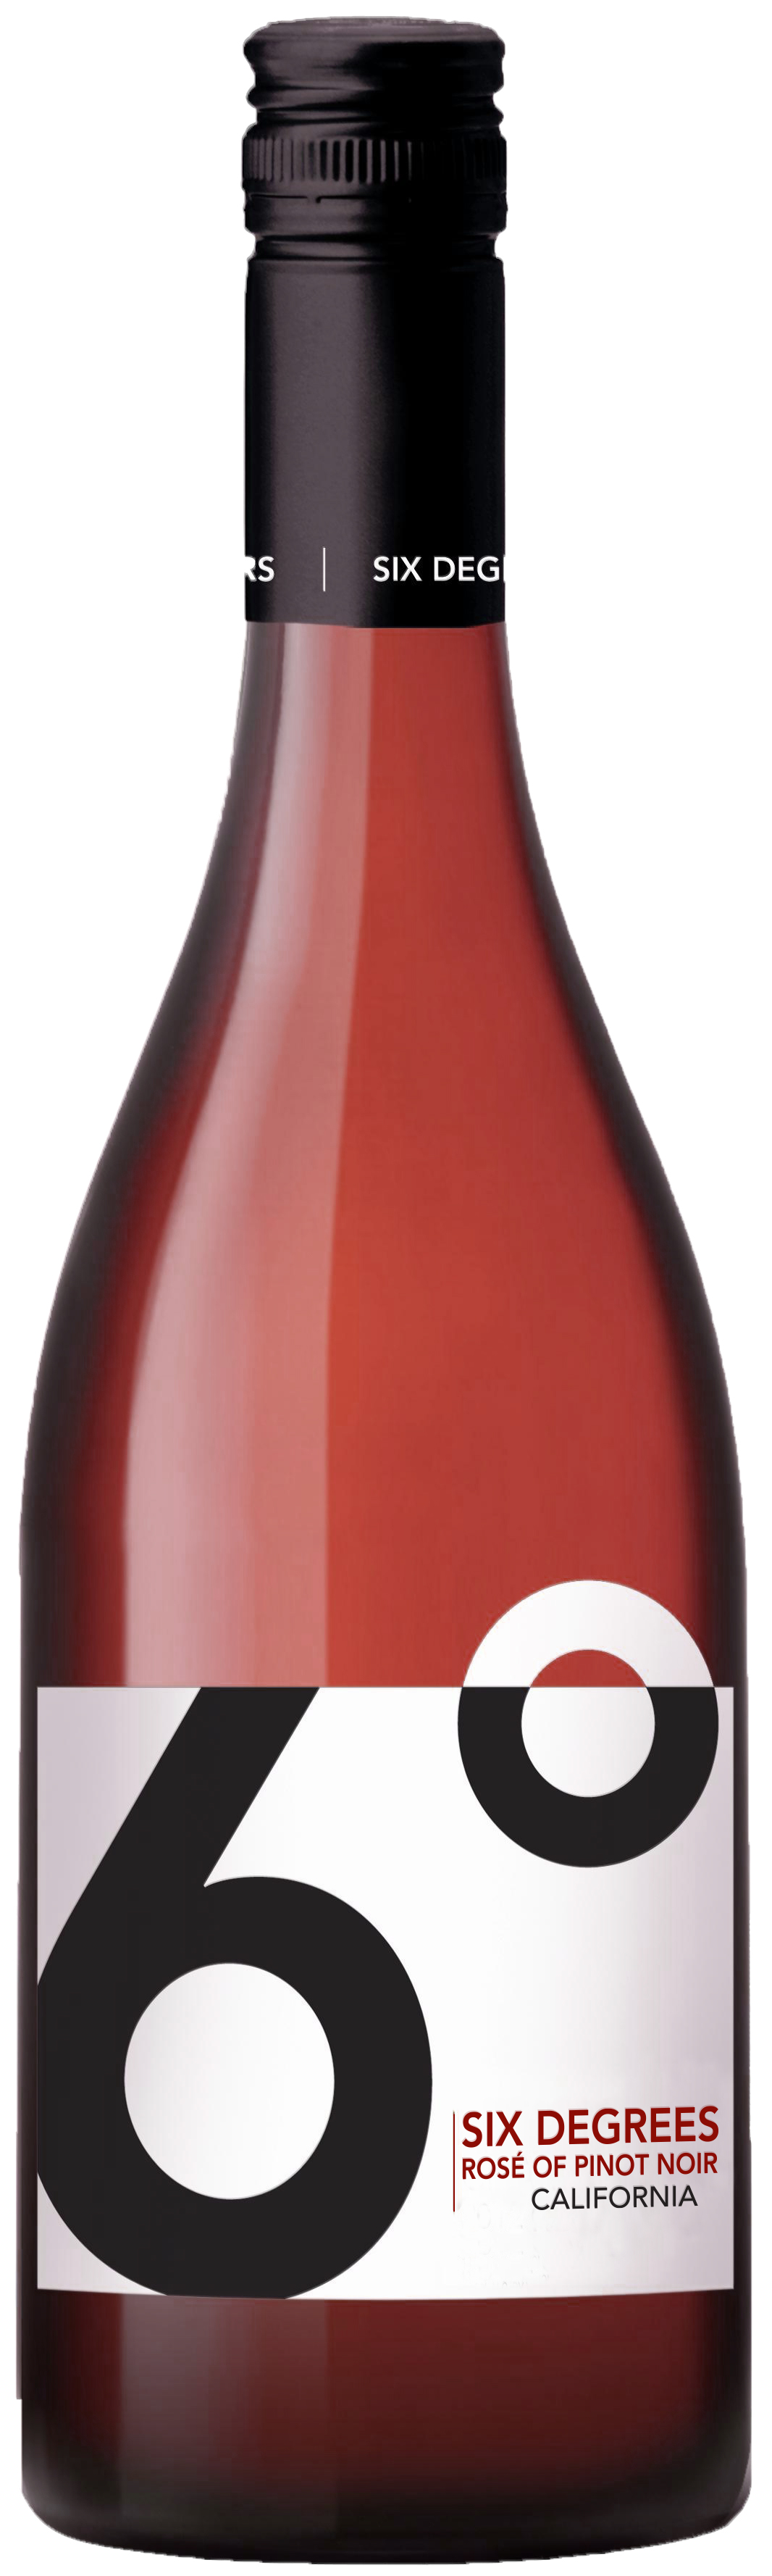 Six Degrees Cellars Launch 2014 Rosé Blend of Pinot Noir